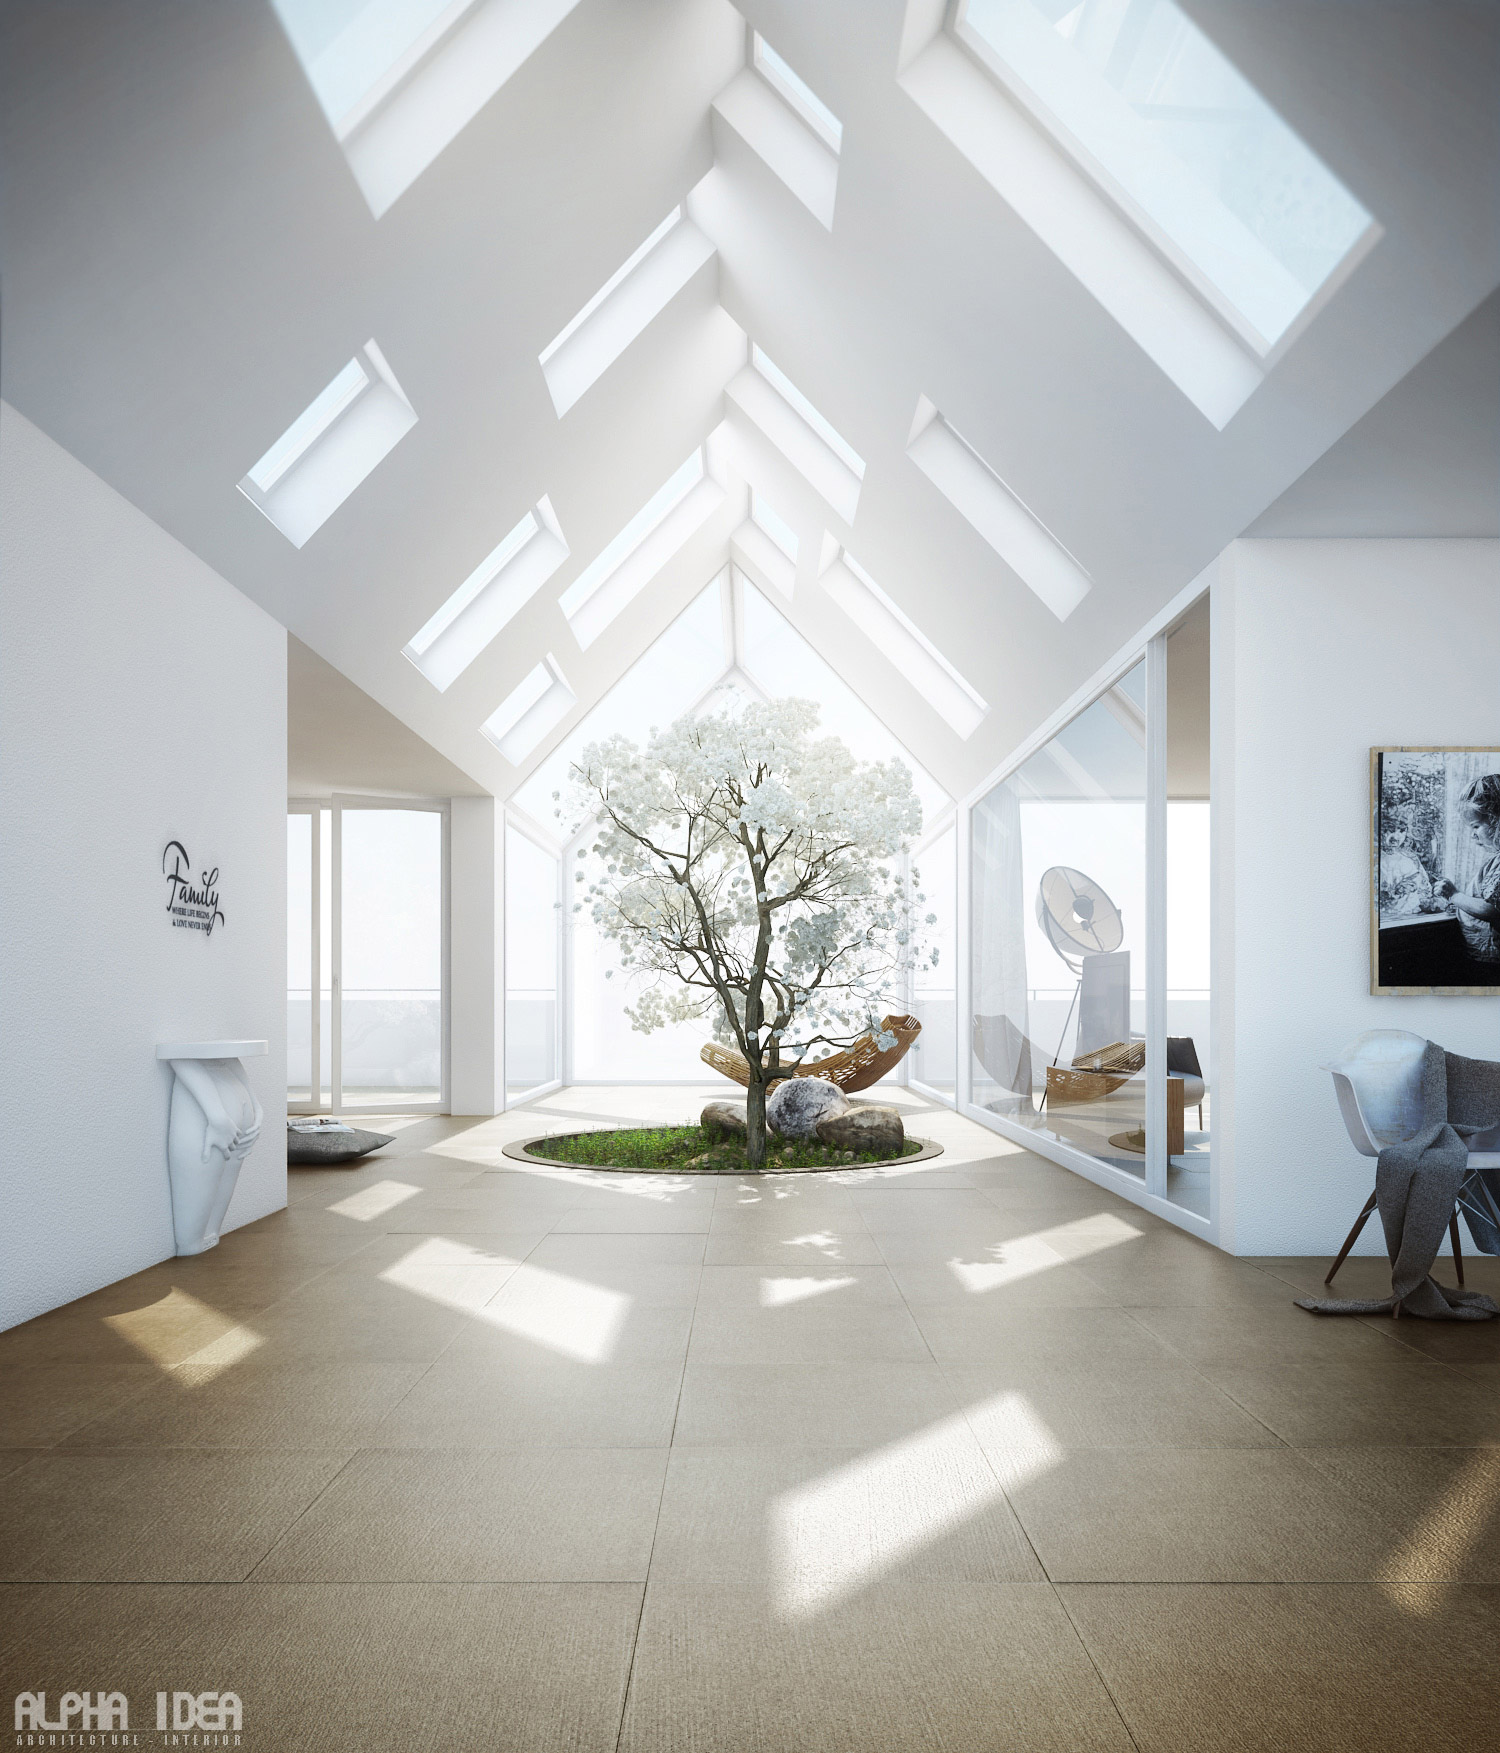 Skylight Designs Unique Home With Skylights And Central Courtyard